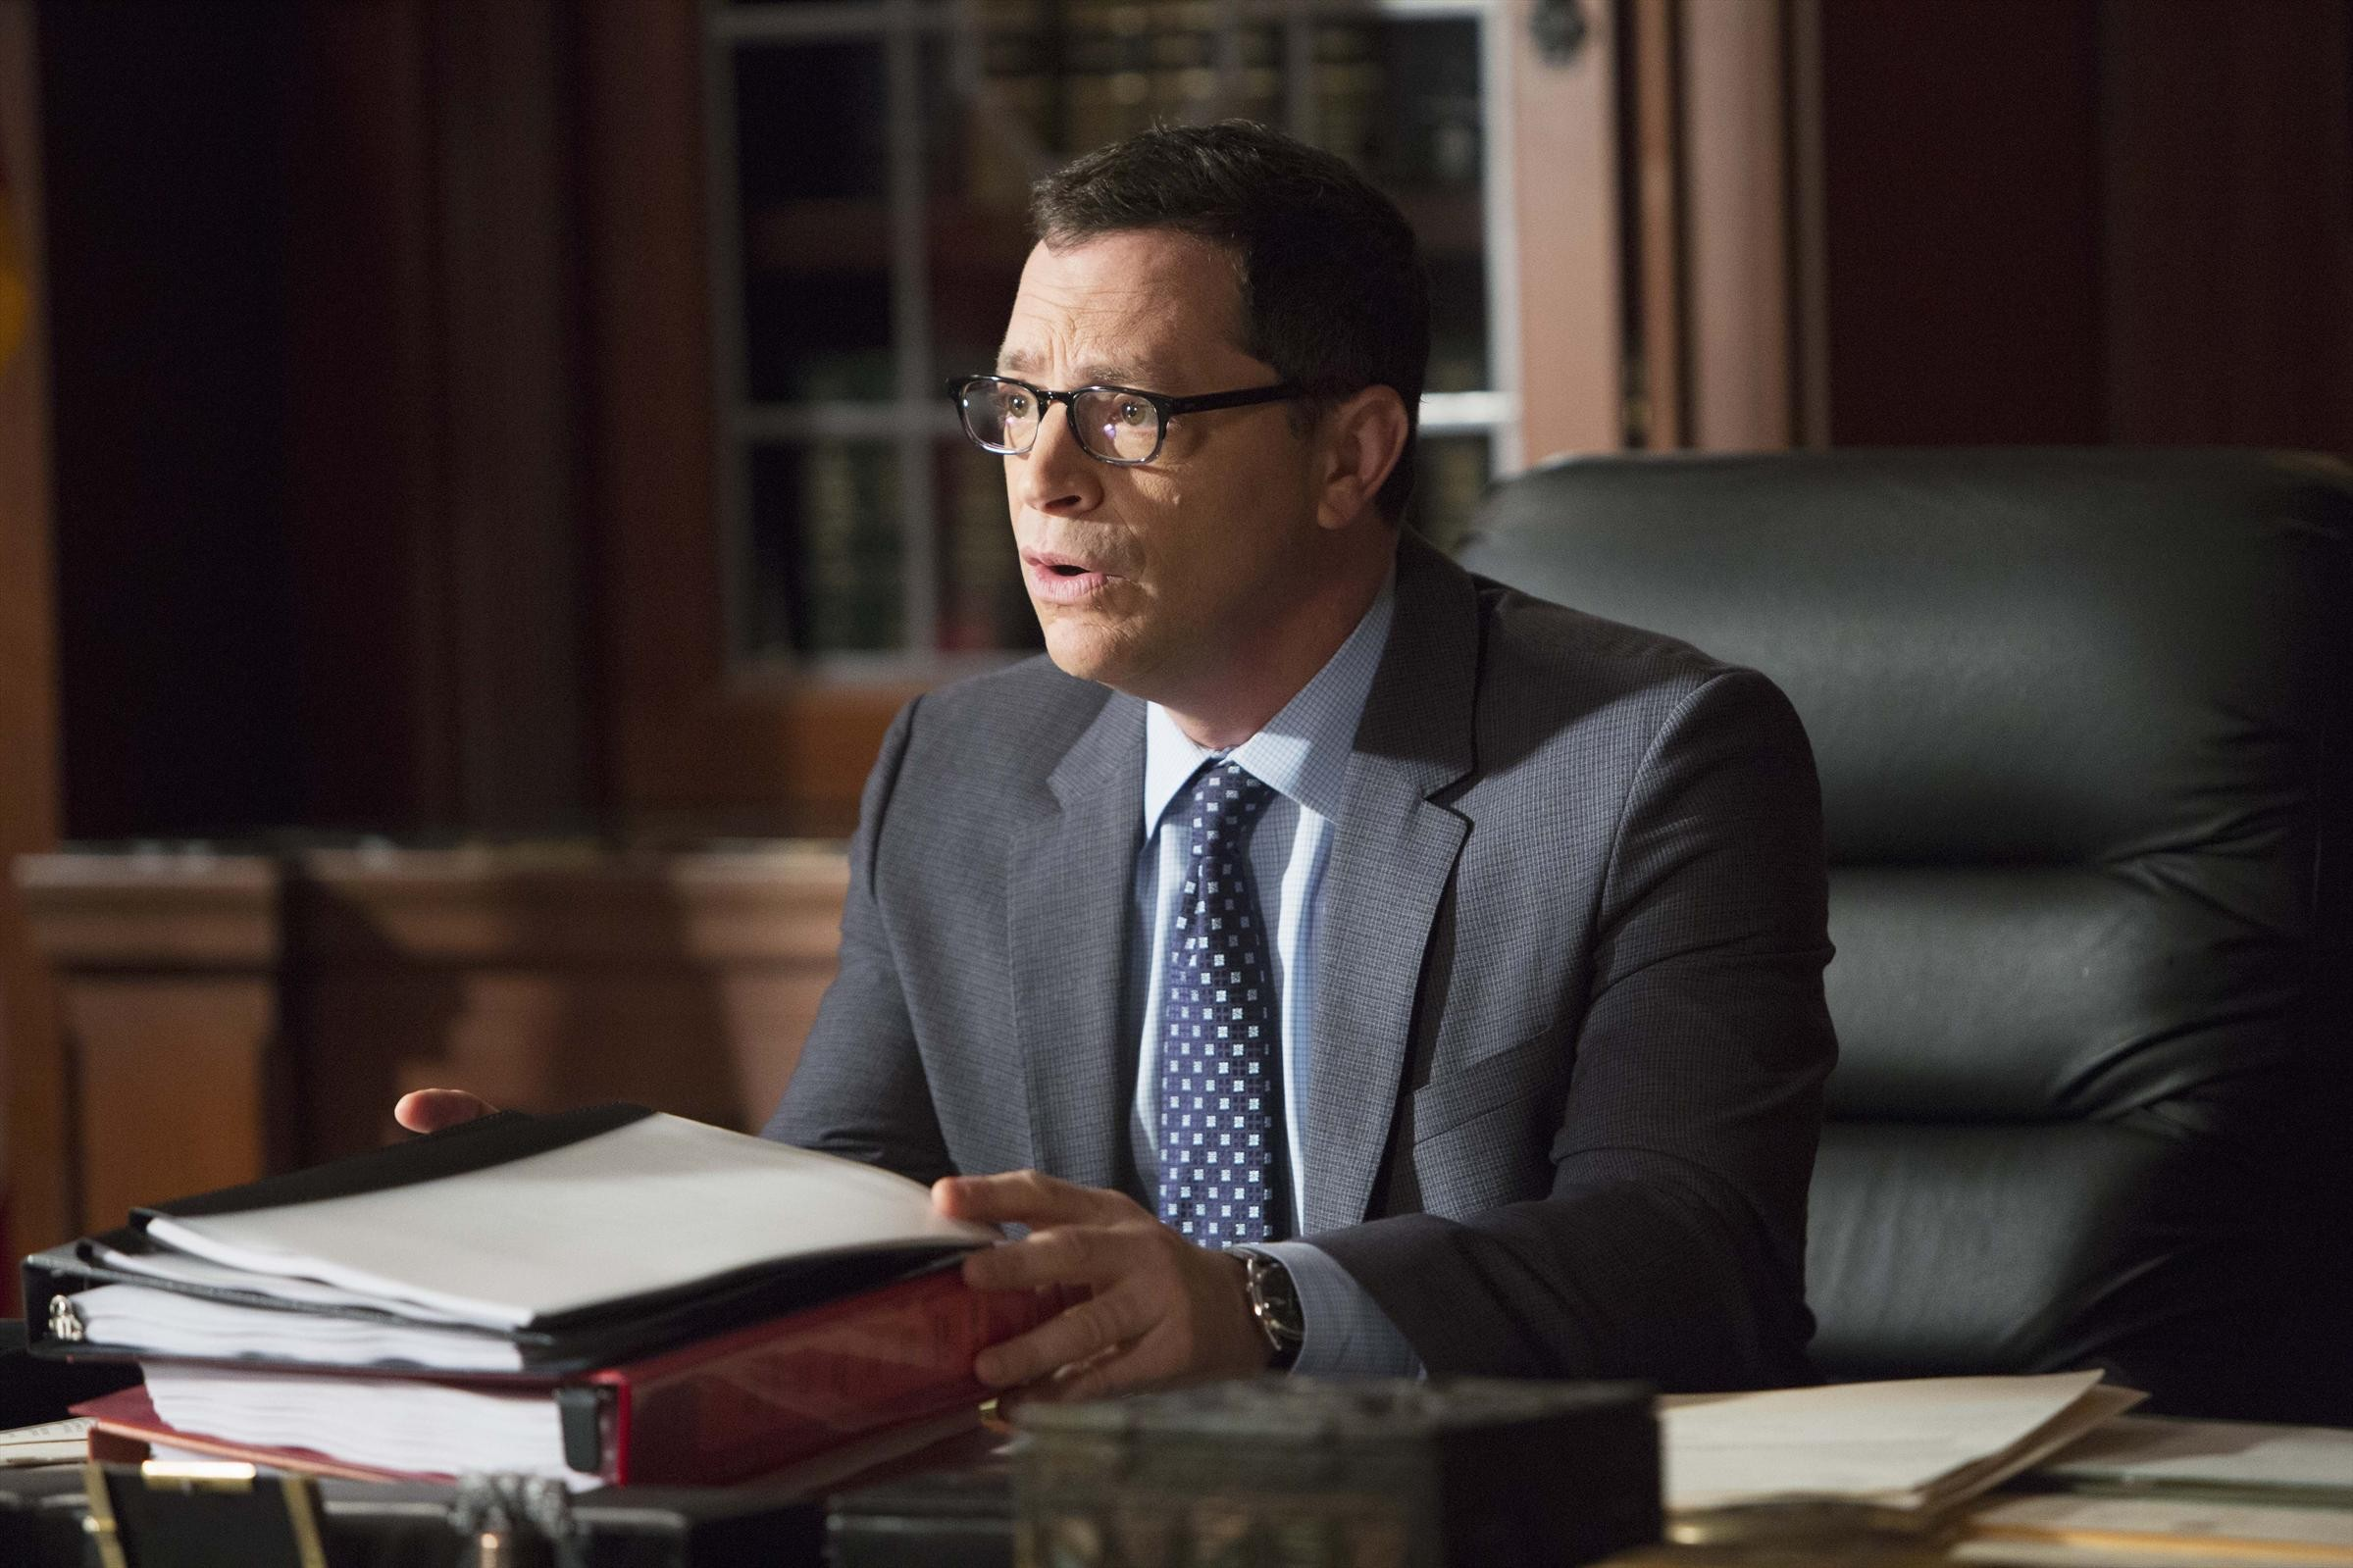 joshua malina svujoshua malina instagram, joshua malina twitter, joshua malina undercard, joshua malina wife, joshua malina, joshua malina vine, joshua malina net worth, joshua malina podcast, joshua malina imdb, joshua malina west wing, joshua malina big bang theory, joshua malina nick kroll, joshua malina grey's anatomy, joshua malina shirtless, joshua malina west wing podcast, joshua malina svu, joshua malina psych, joshua malina pranks, joshua malina law and order svu, joshua malina ethnicity